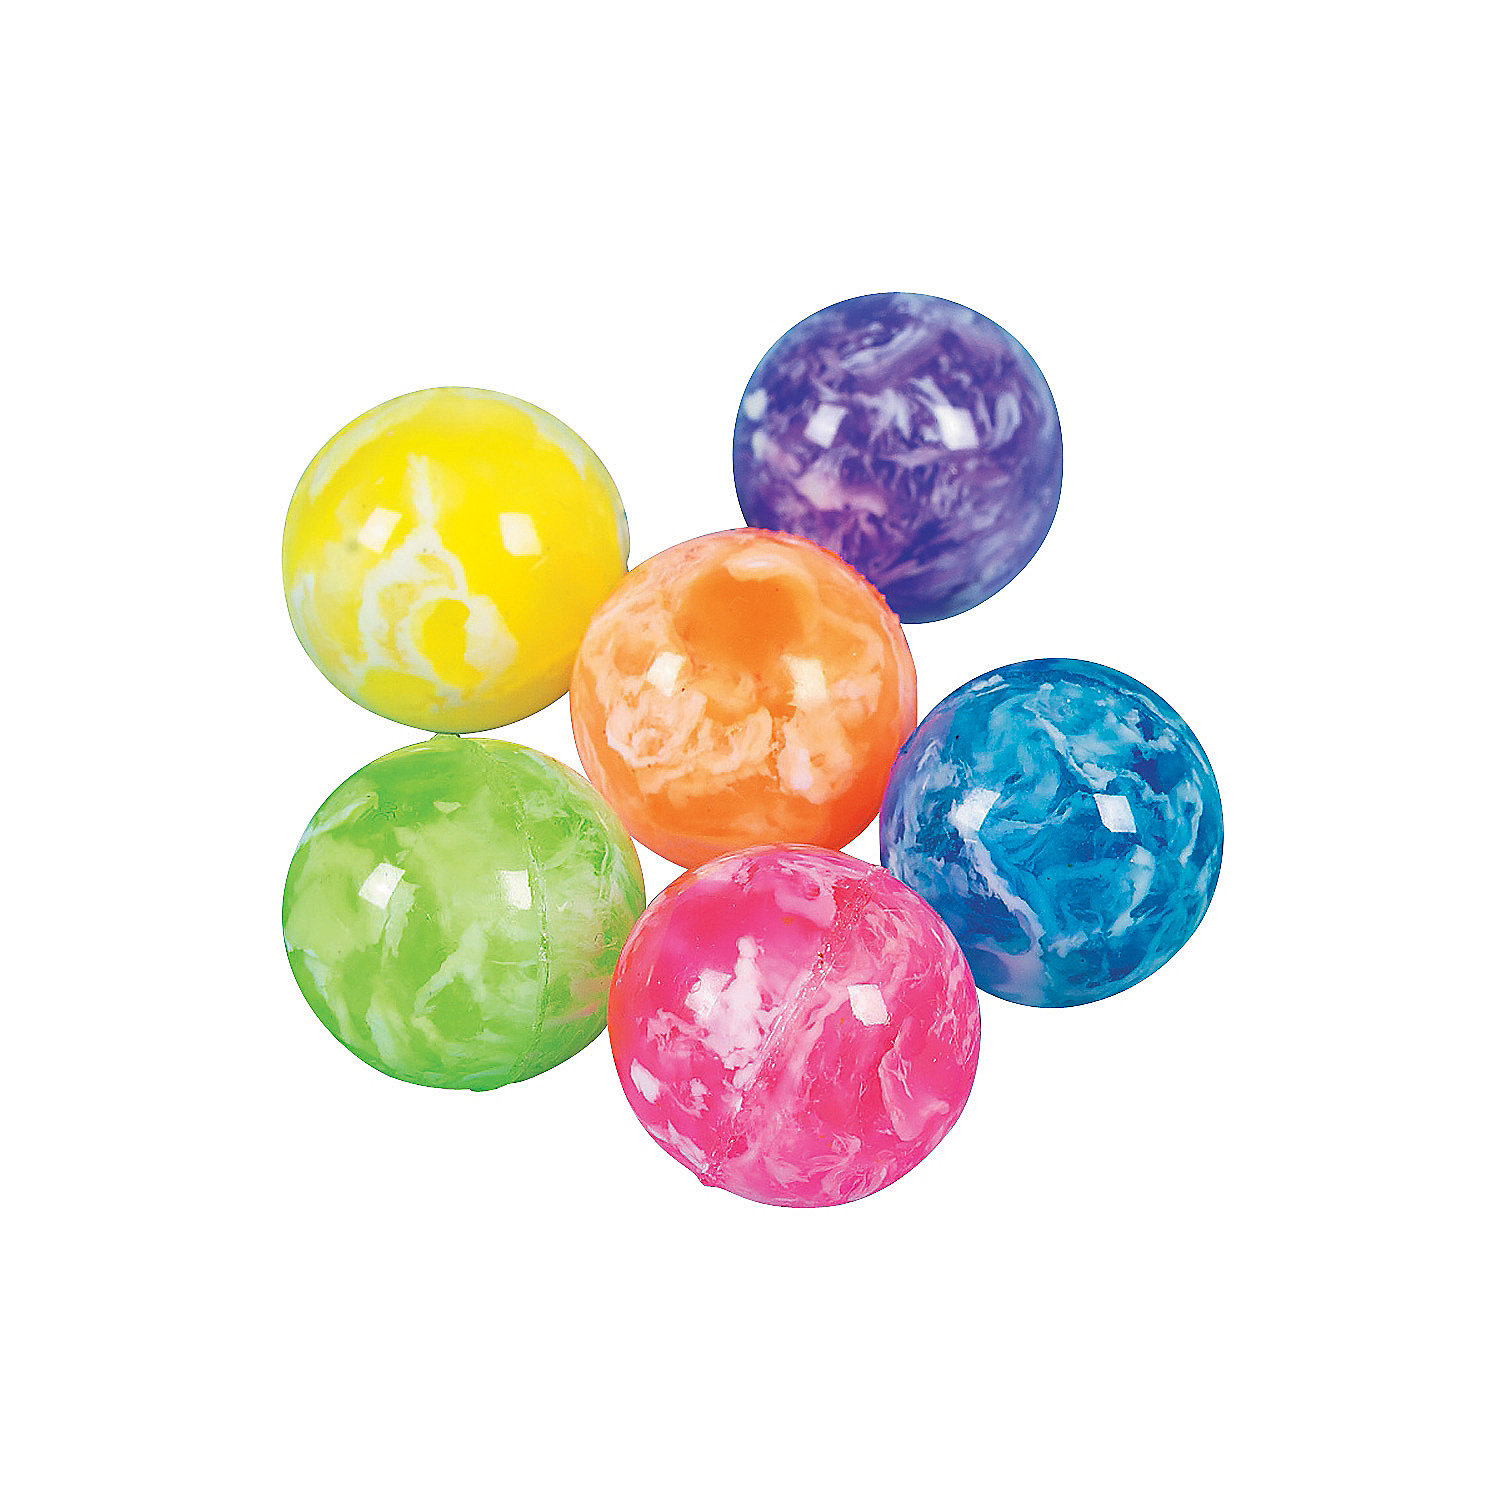 bouncy balls 10/20pcs funny bounce balls each ball have a funny toy in it,wrenching it,you get it,so funny and interesting led light up smiley bouncy balls they are made of a silicone/rubber material.